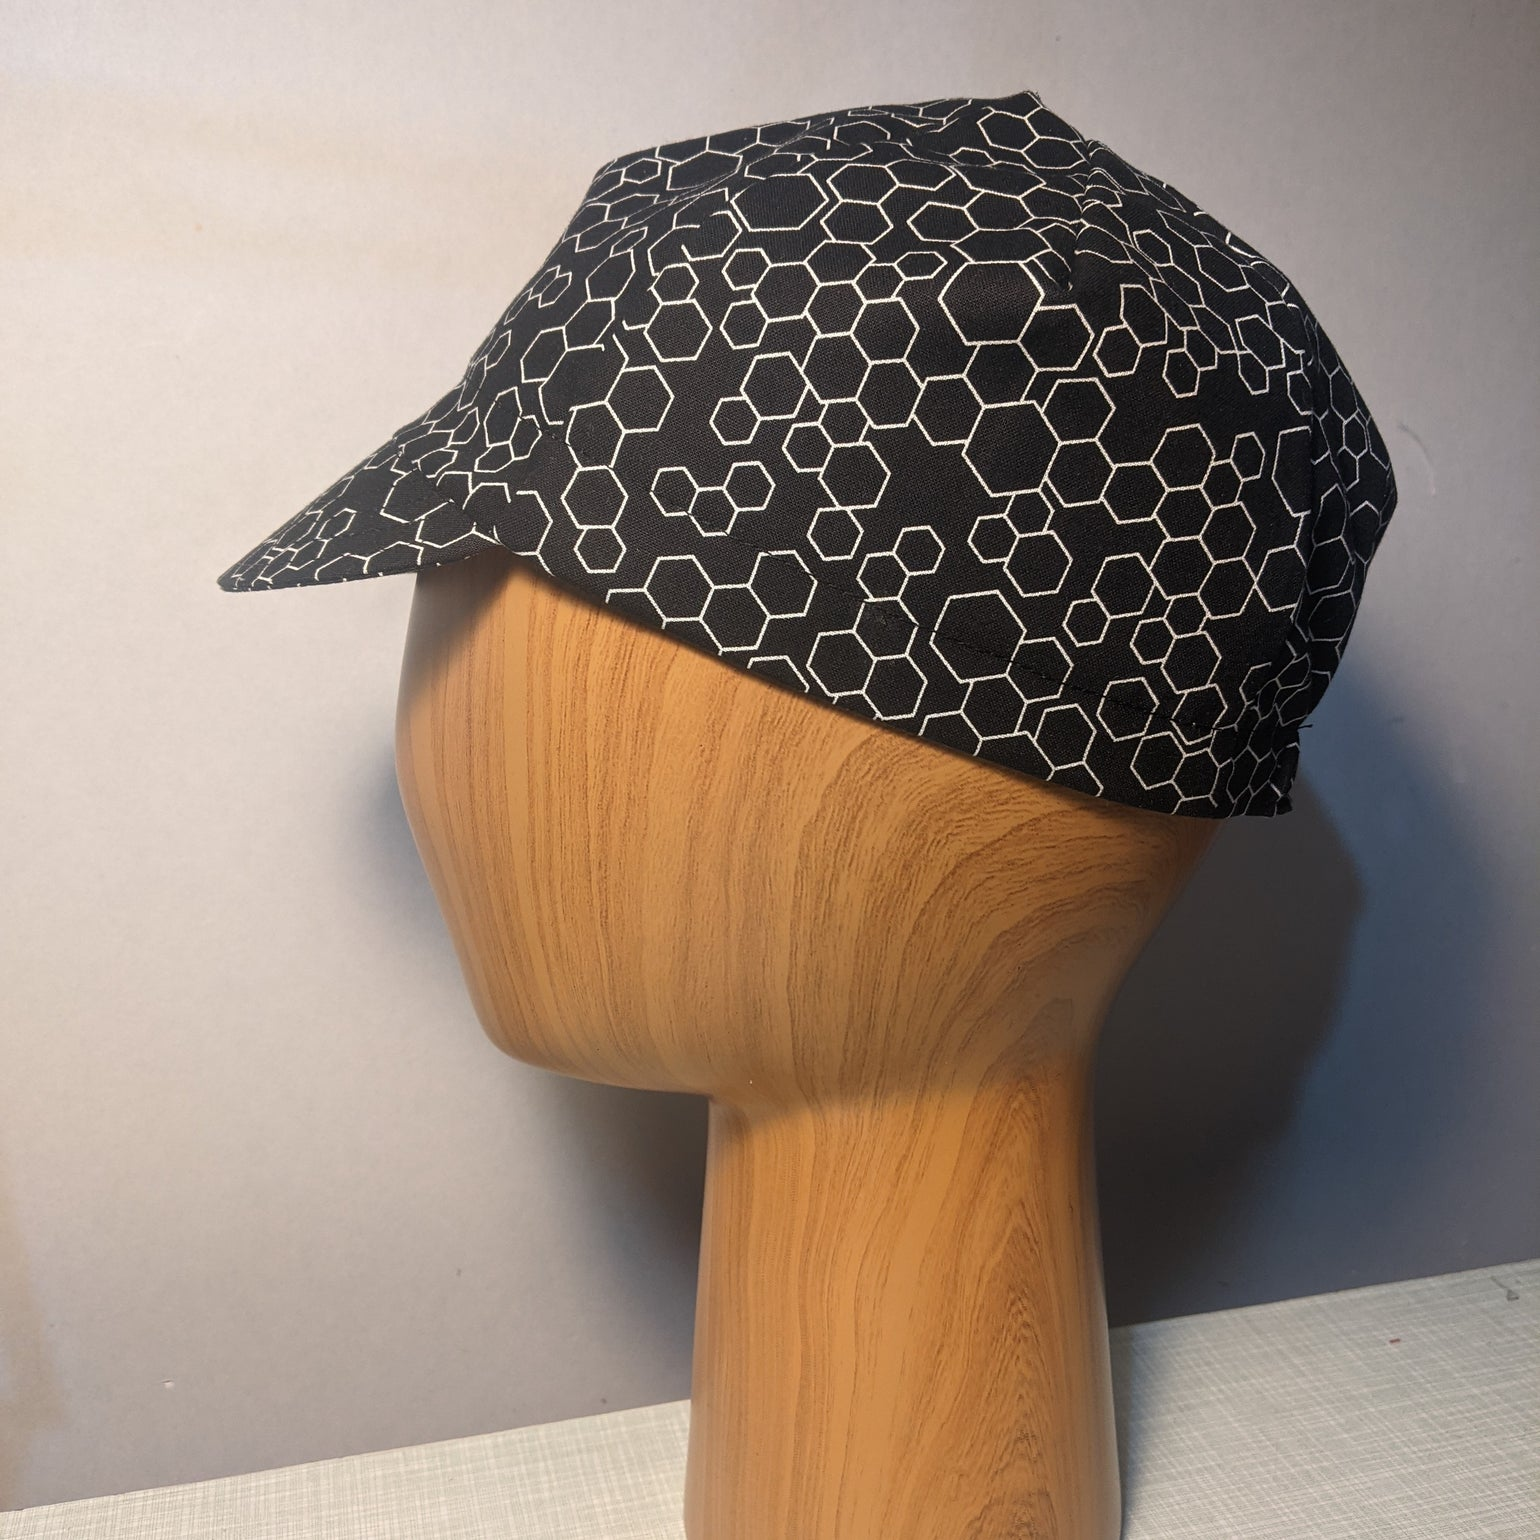 Image of Cotton cycling cap - black white honeycomb